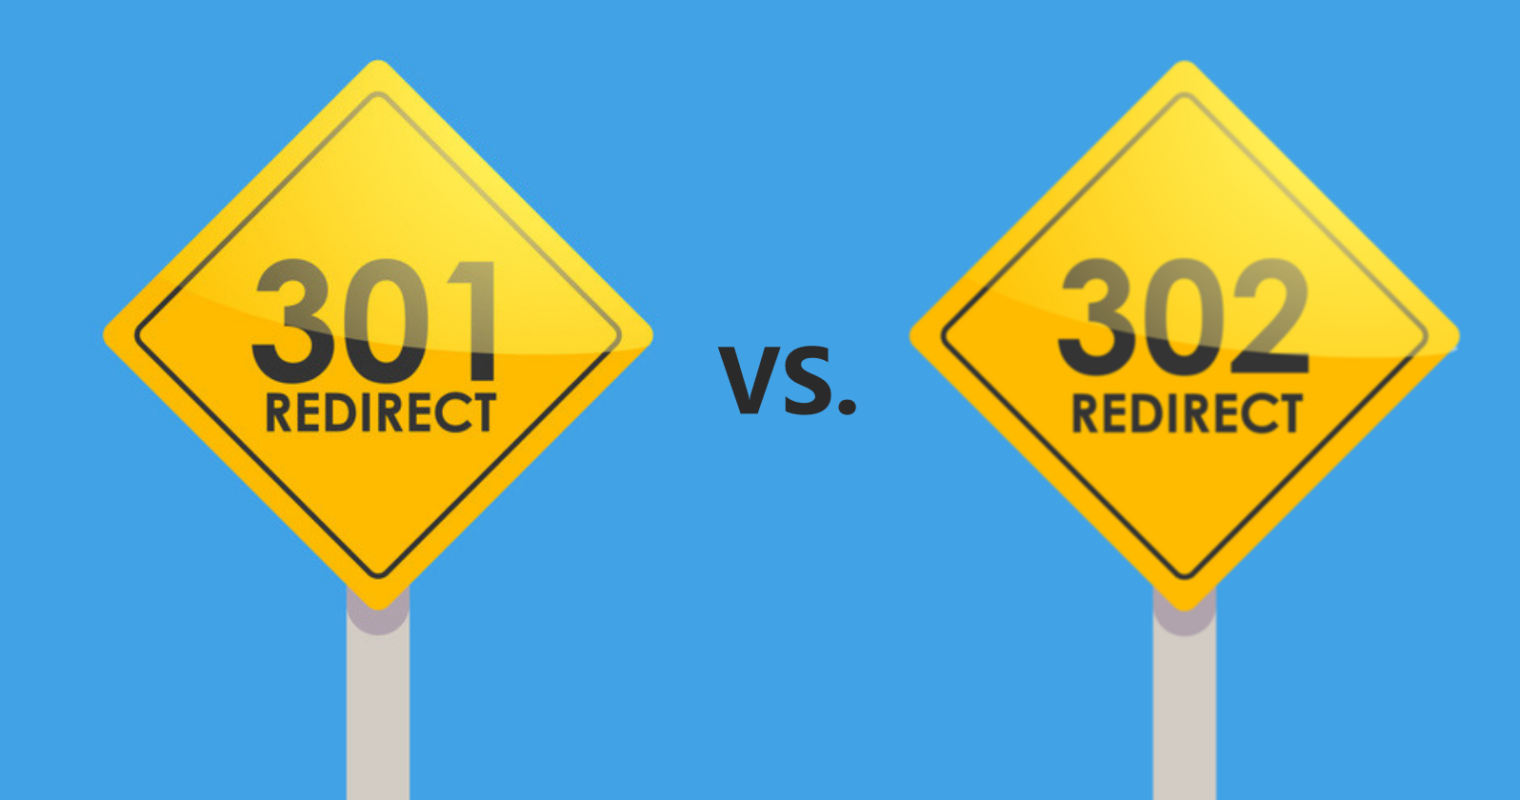 301 vs. 302 Redirects & SEO: The What, Why & How